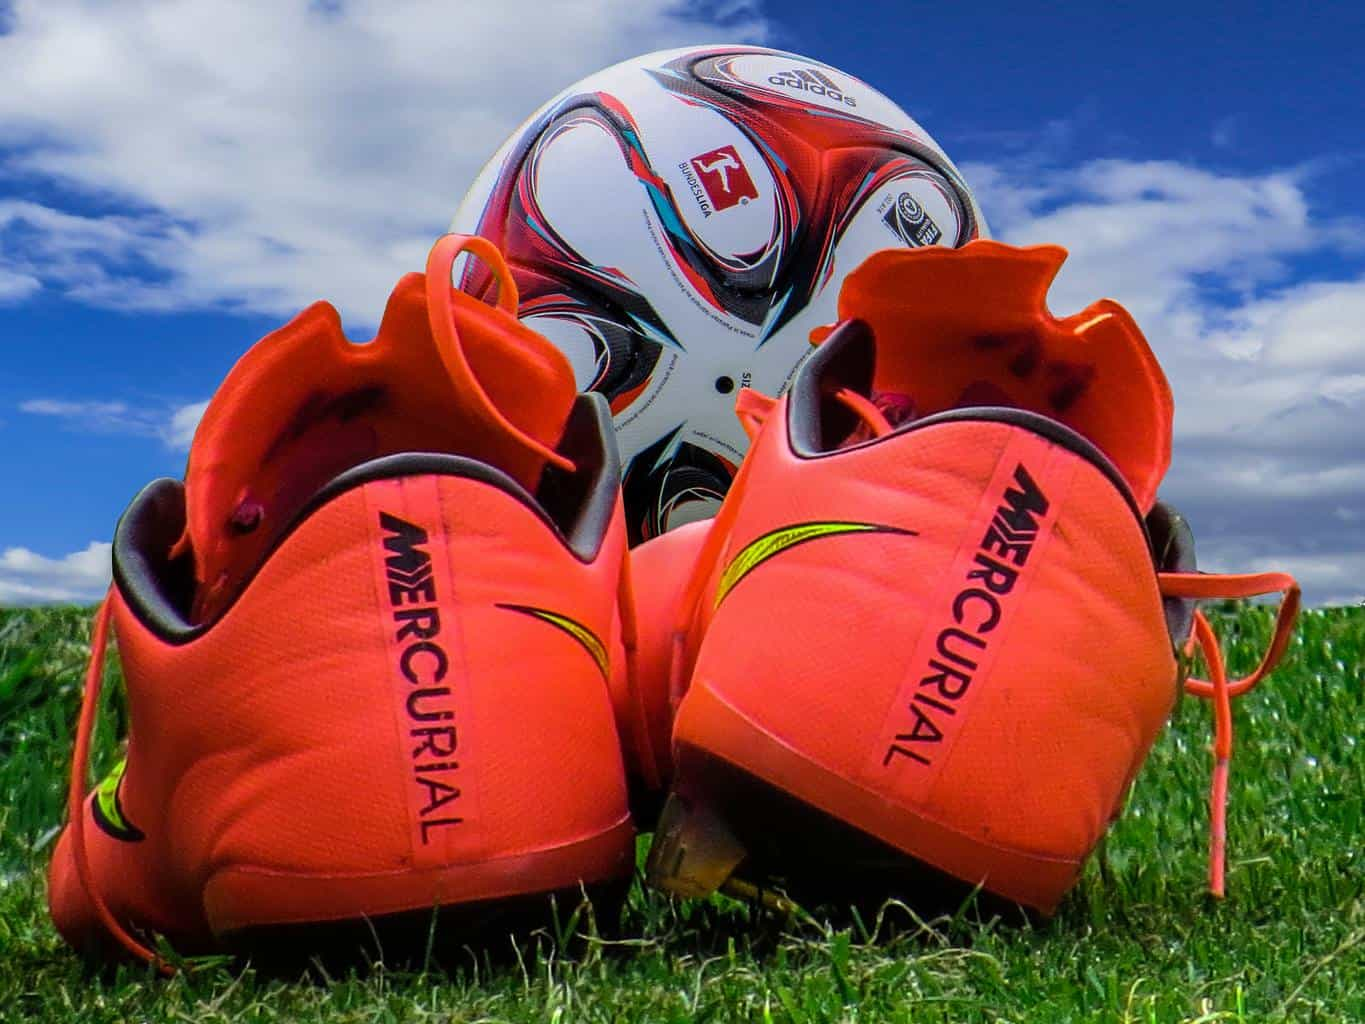 Red soccer cleats and a white soccer ball on grass